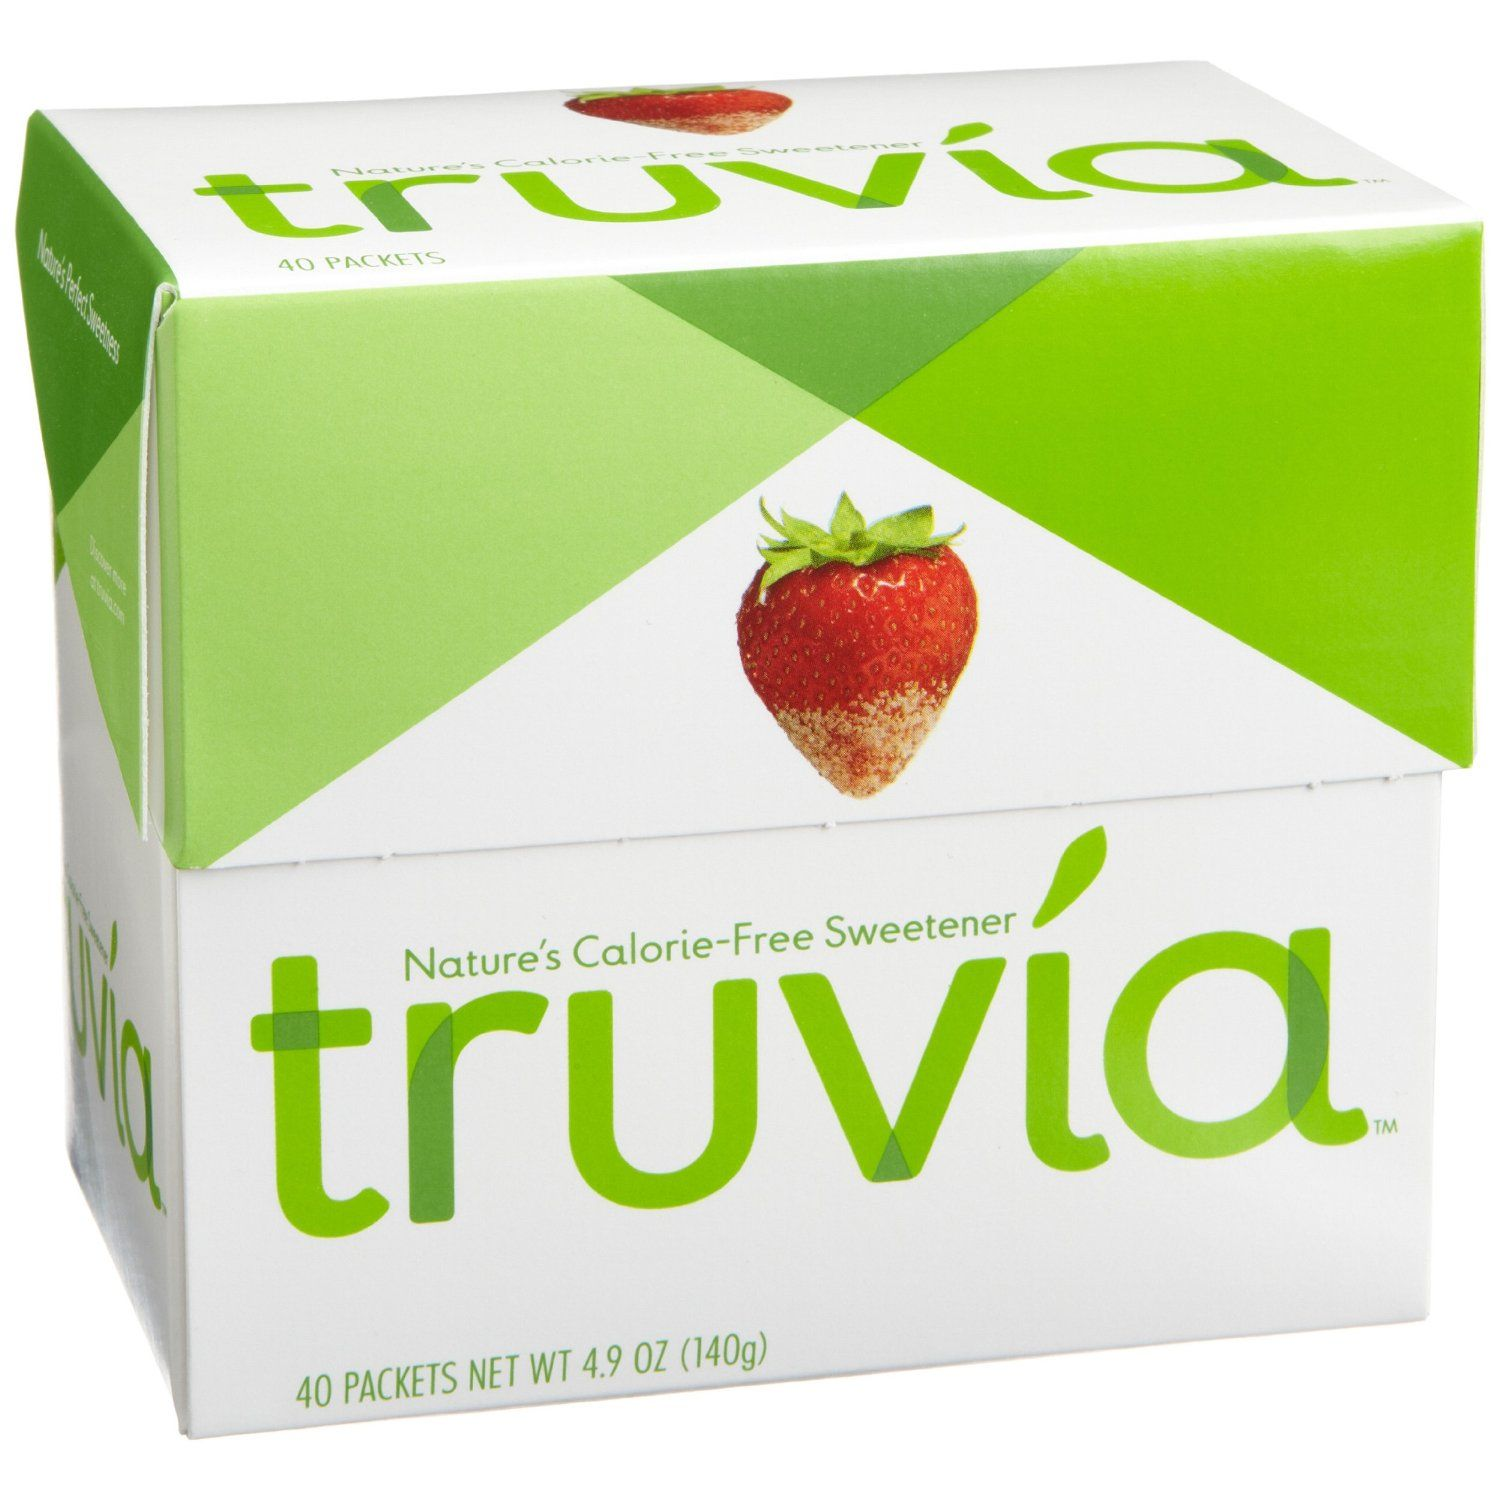 Truvia sweetner made from Stevia plant. Tastes great